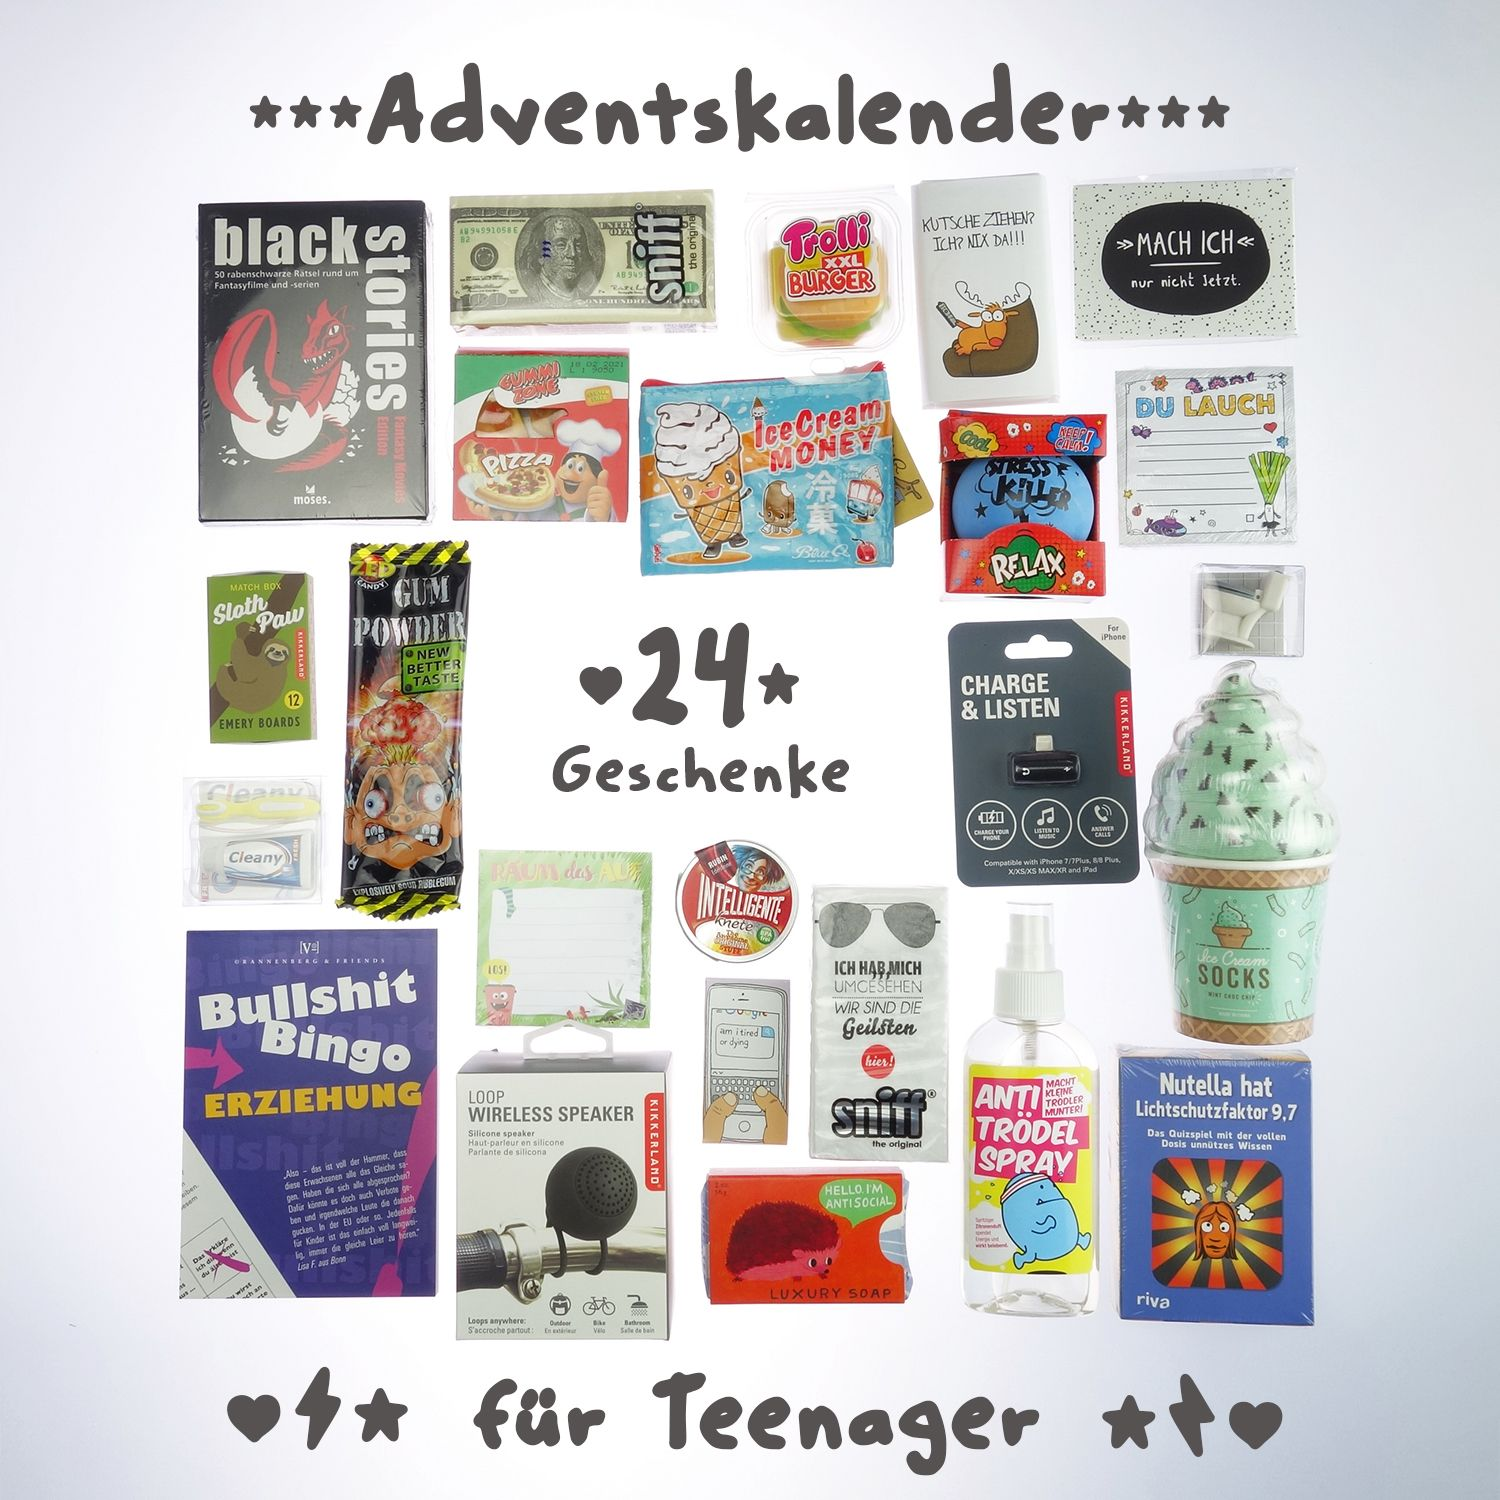 Adventskalender Fur Teenager Tolle Geschenke Vom Adventman Adventkalender Adventskalender Teenager Adventskalender